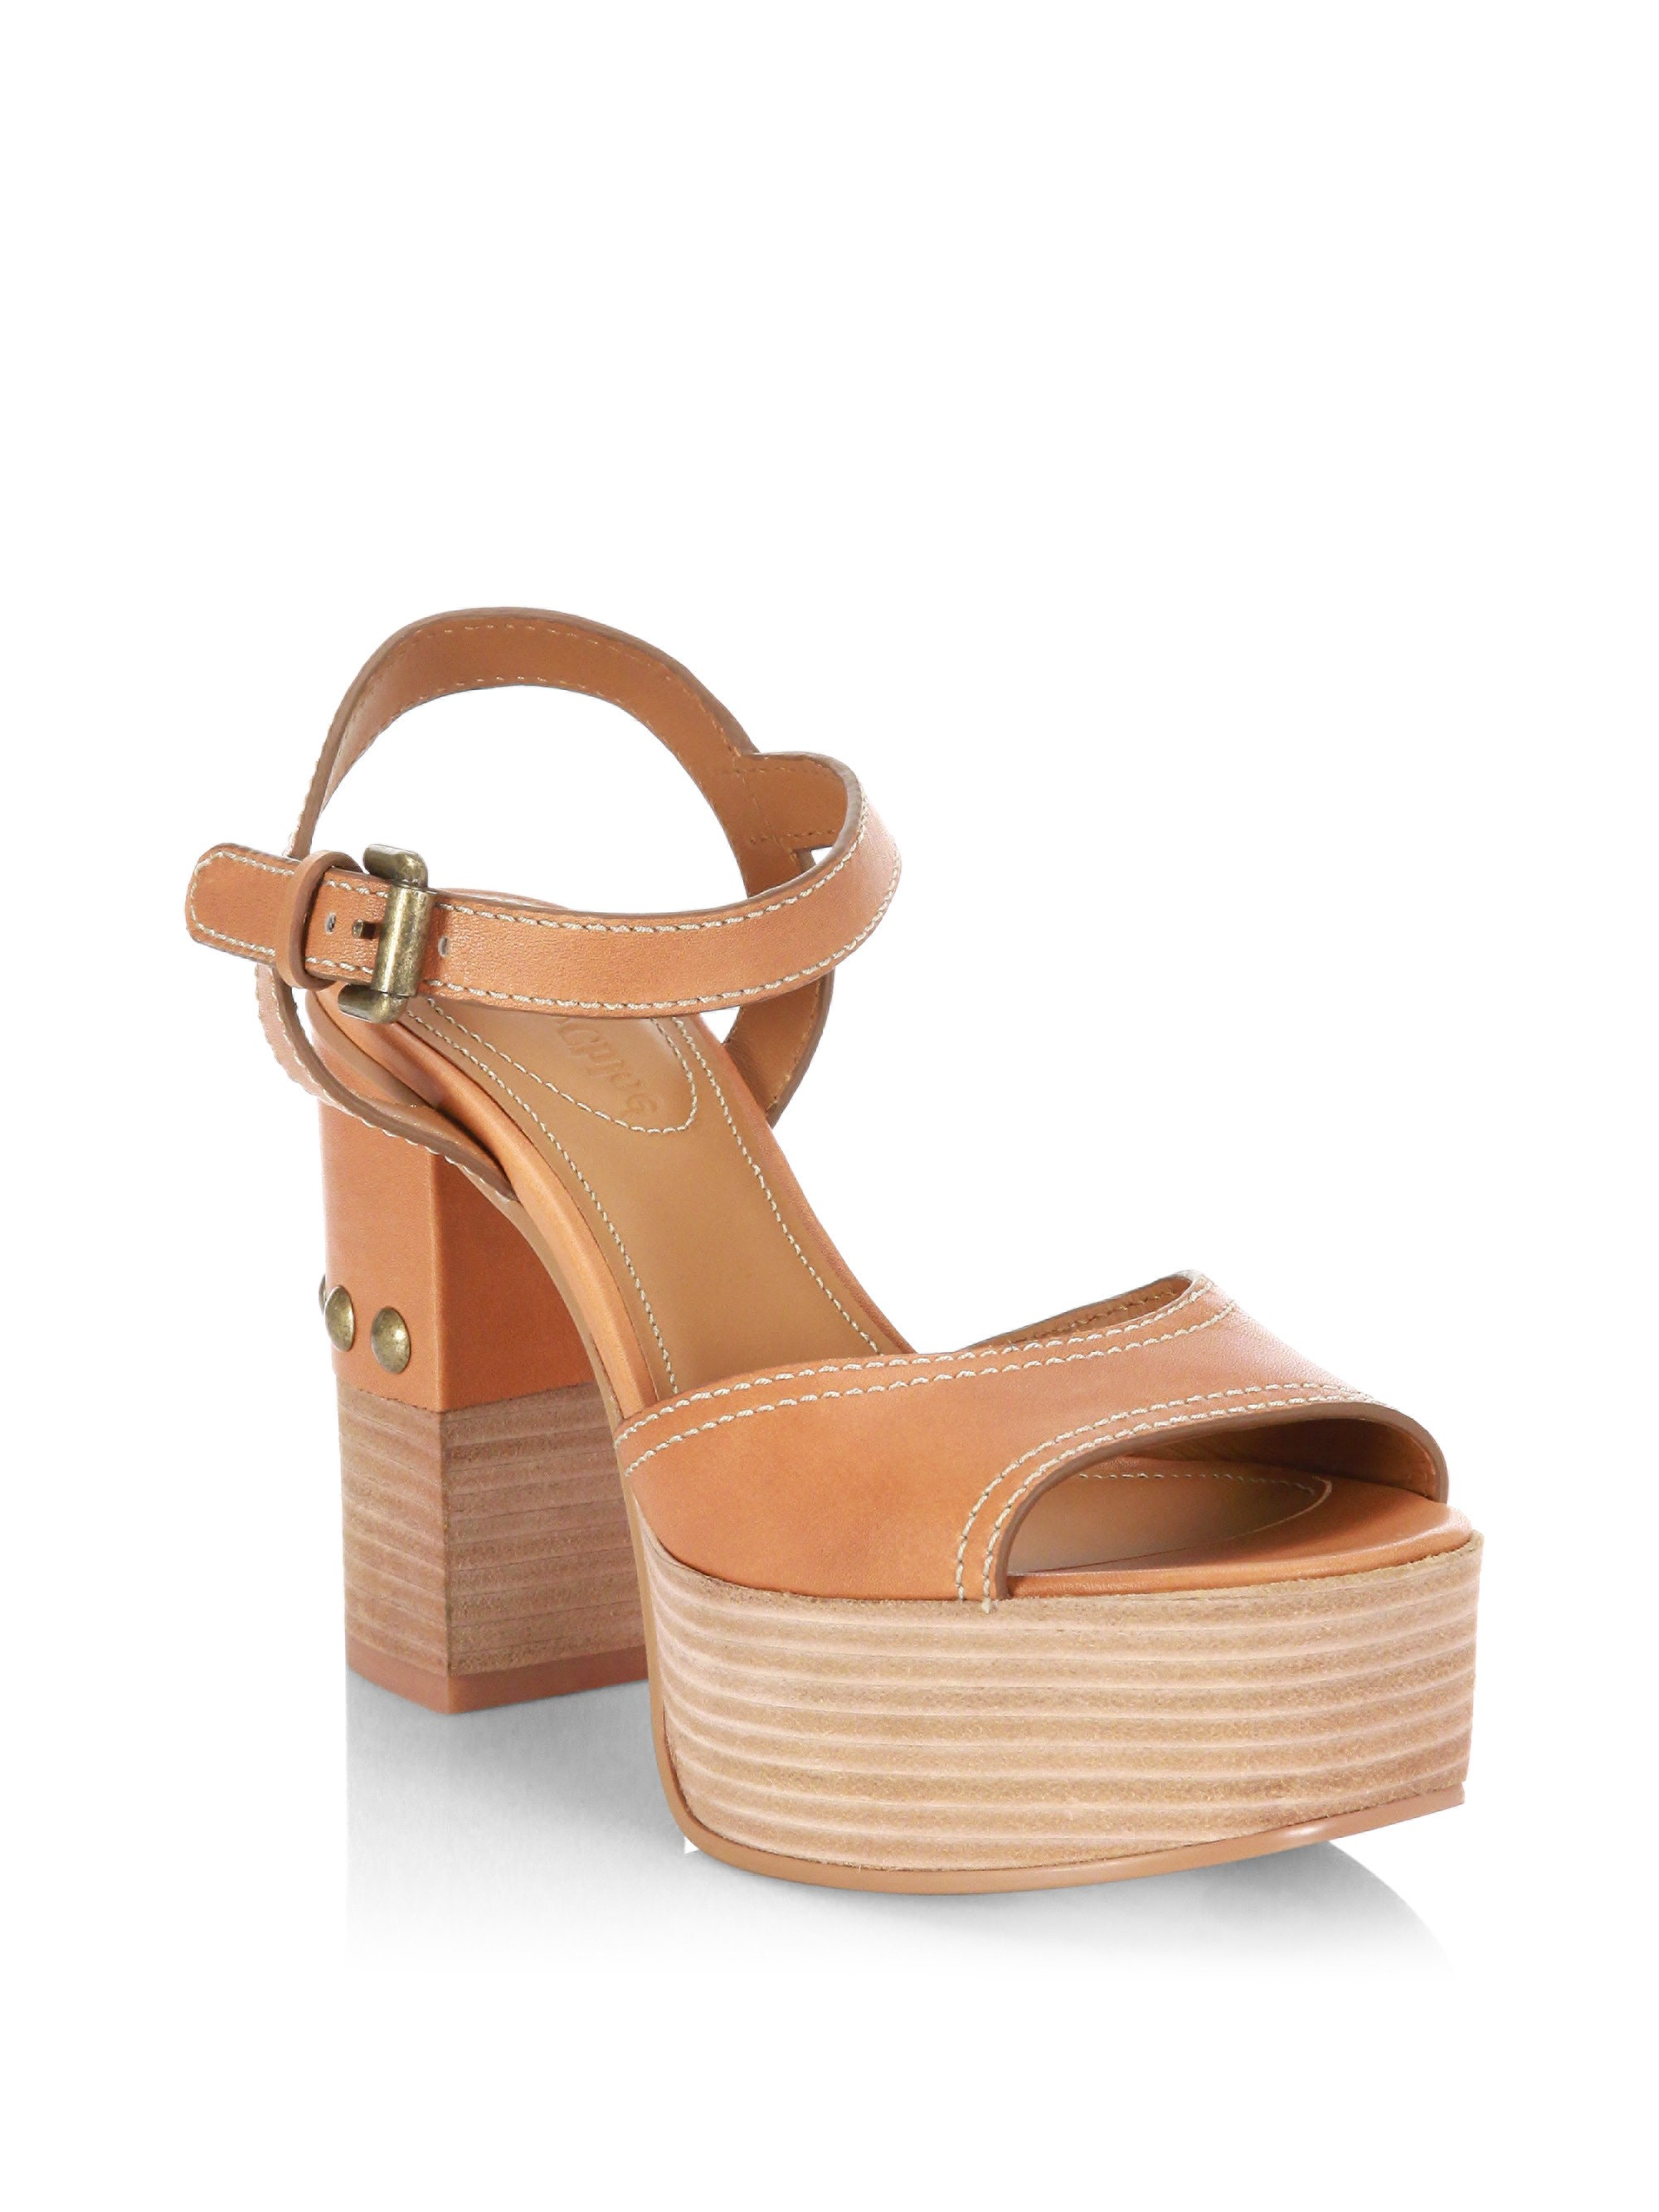 4e1546c50 Leather Platform Sandals by SEE BY CHLOÉ | Ladies Shoes!!!! | Shoes ...